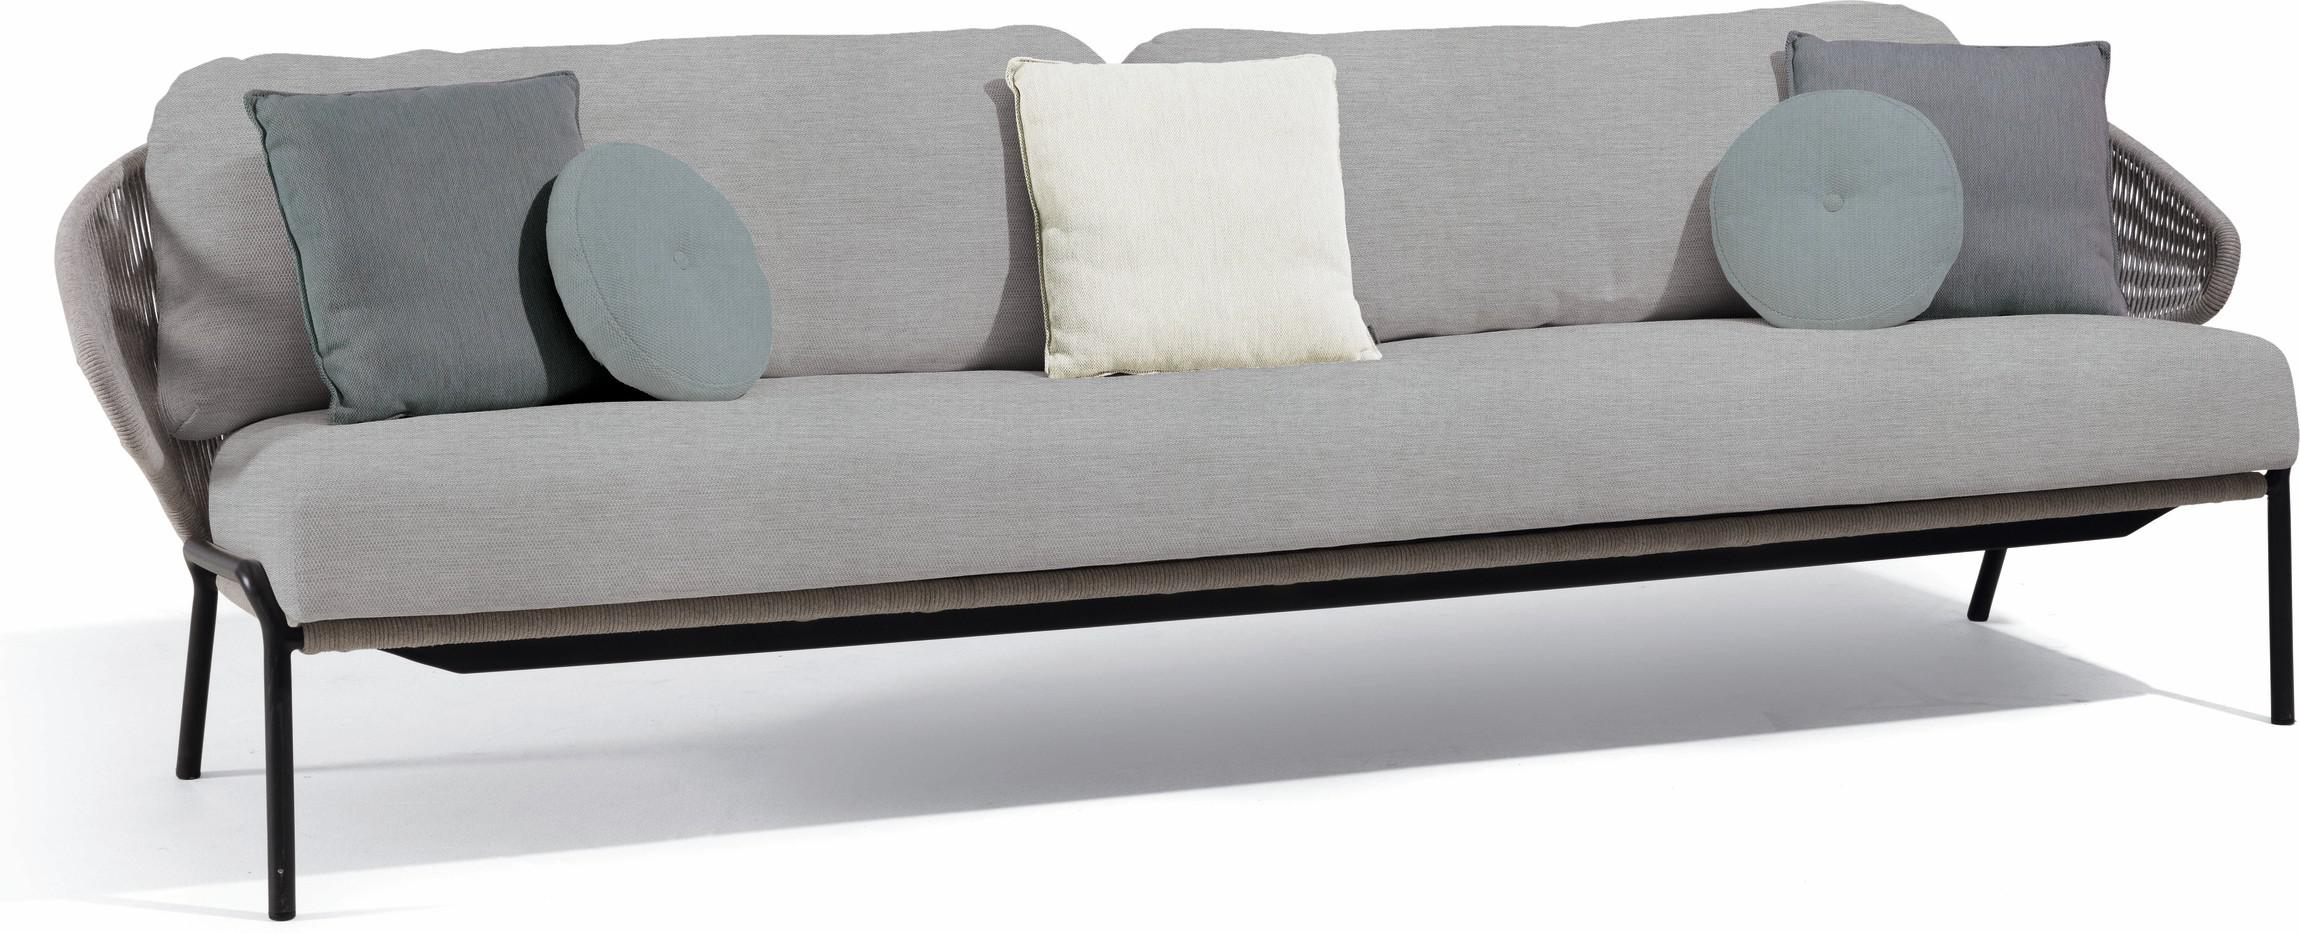 Radius 3 seater - Sofa fixed - lava - silver